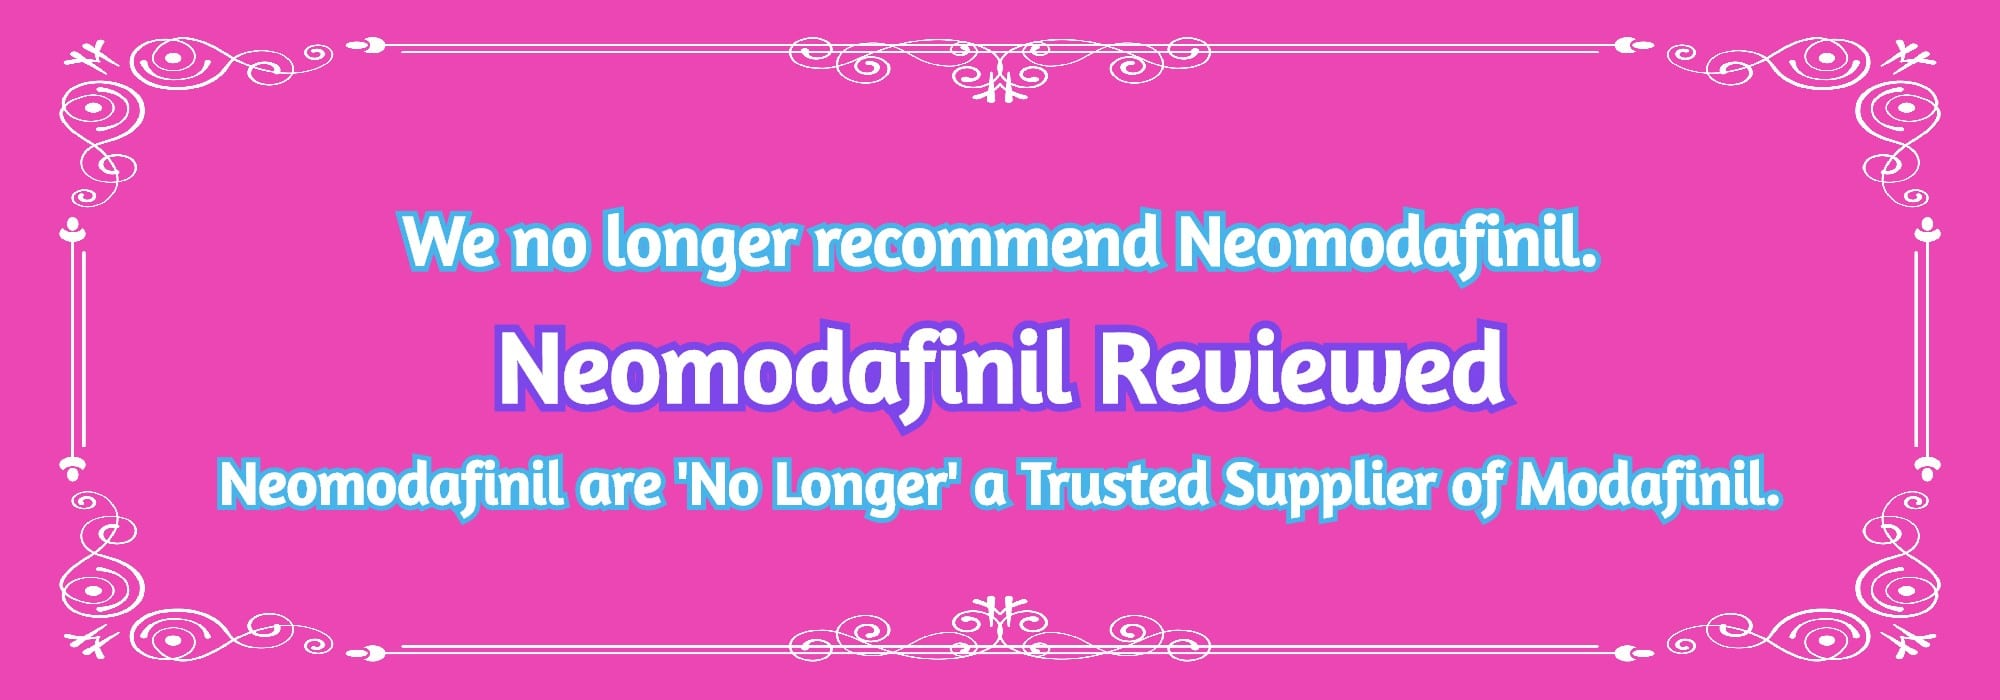 Neomodafinil Reviewed